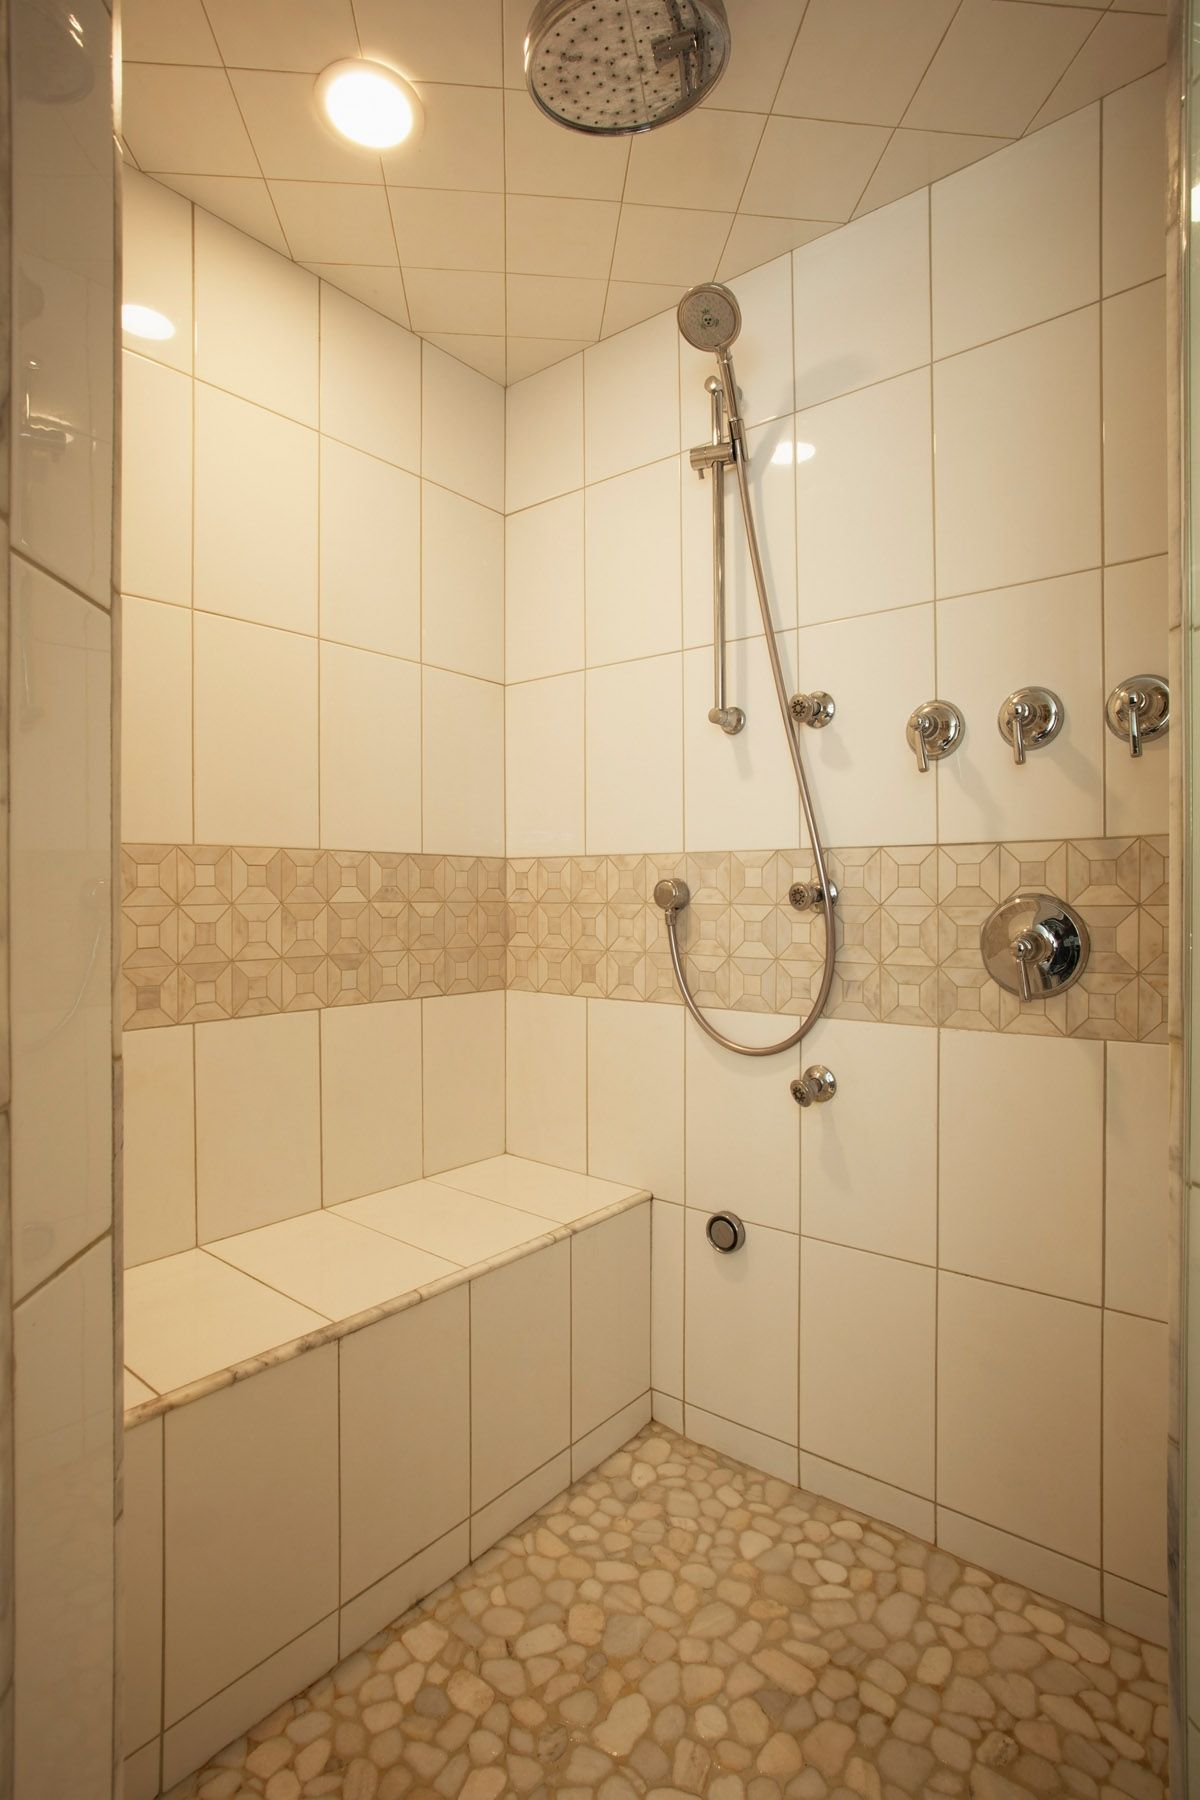 Bathroom Renovation   Steam Shower With Multi Body Jets And Rain Head